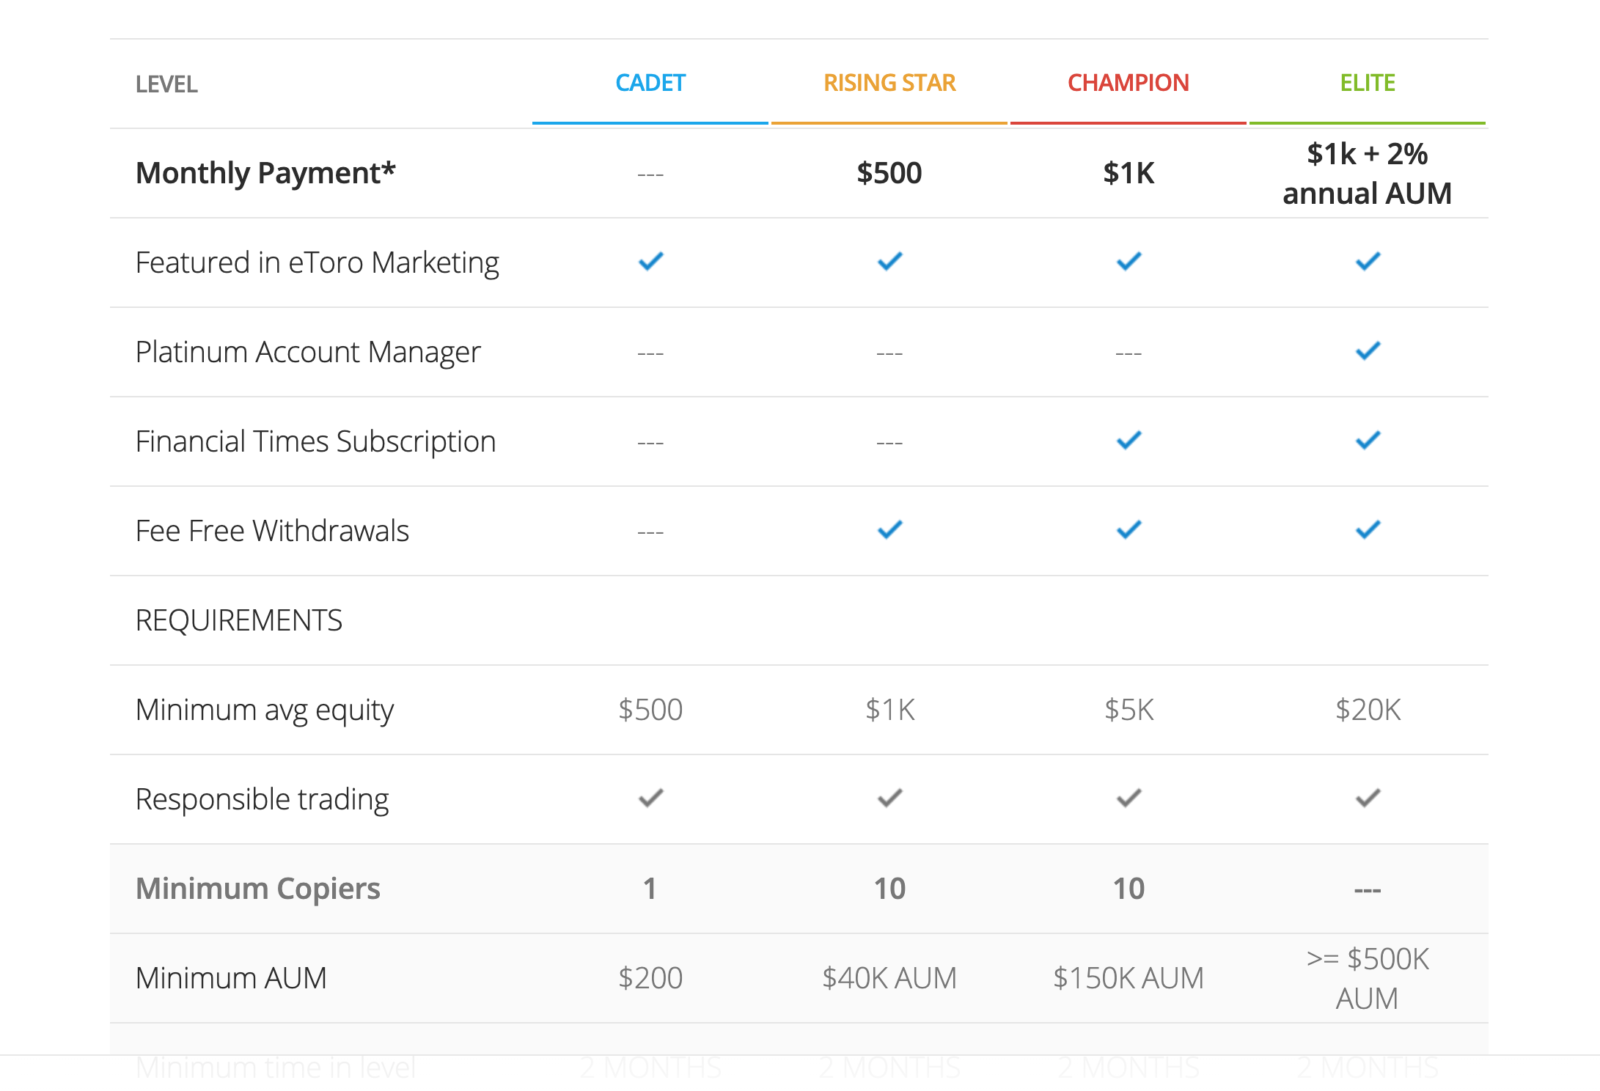 a table showing the benefits and requirements for all four levels of popular investor on eToro